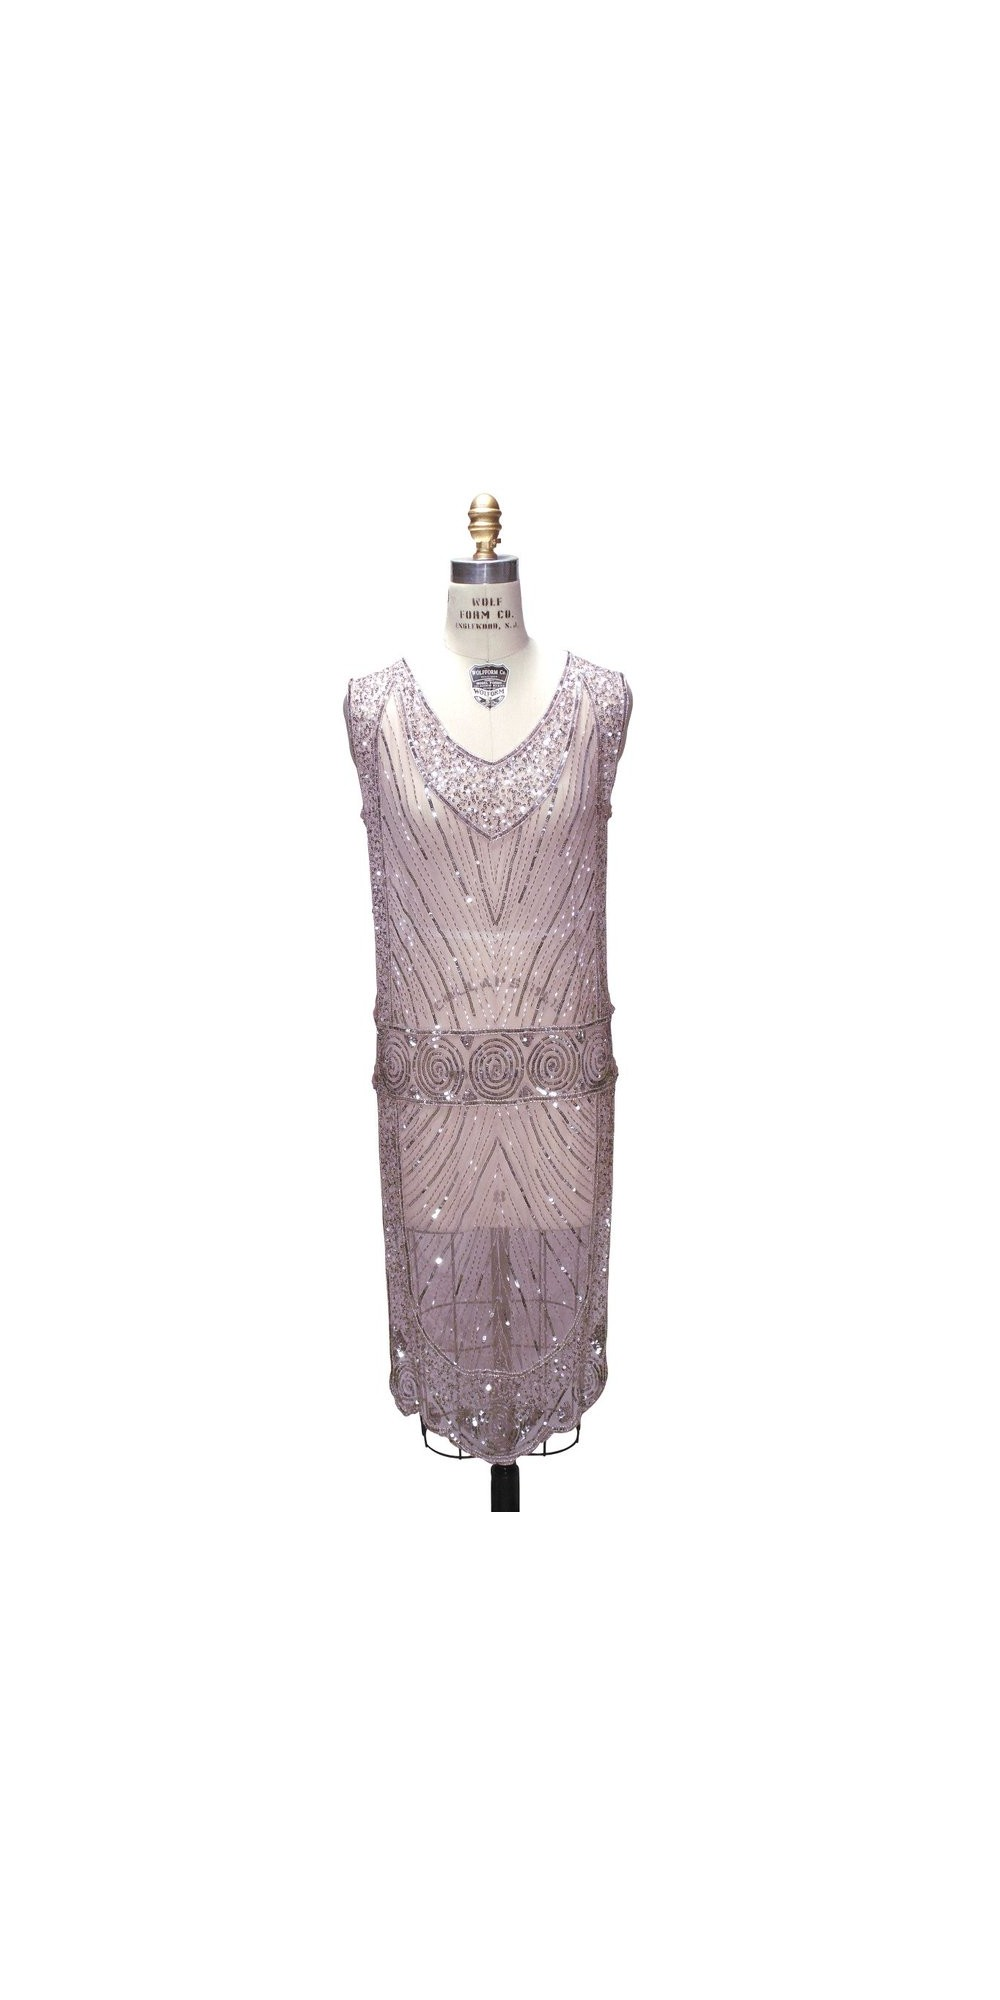 Wolf Haus Reggio Emilia great gatsby style tabard dress in peppermint pink by the deco haus